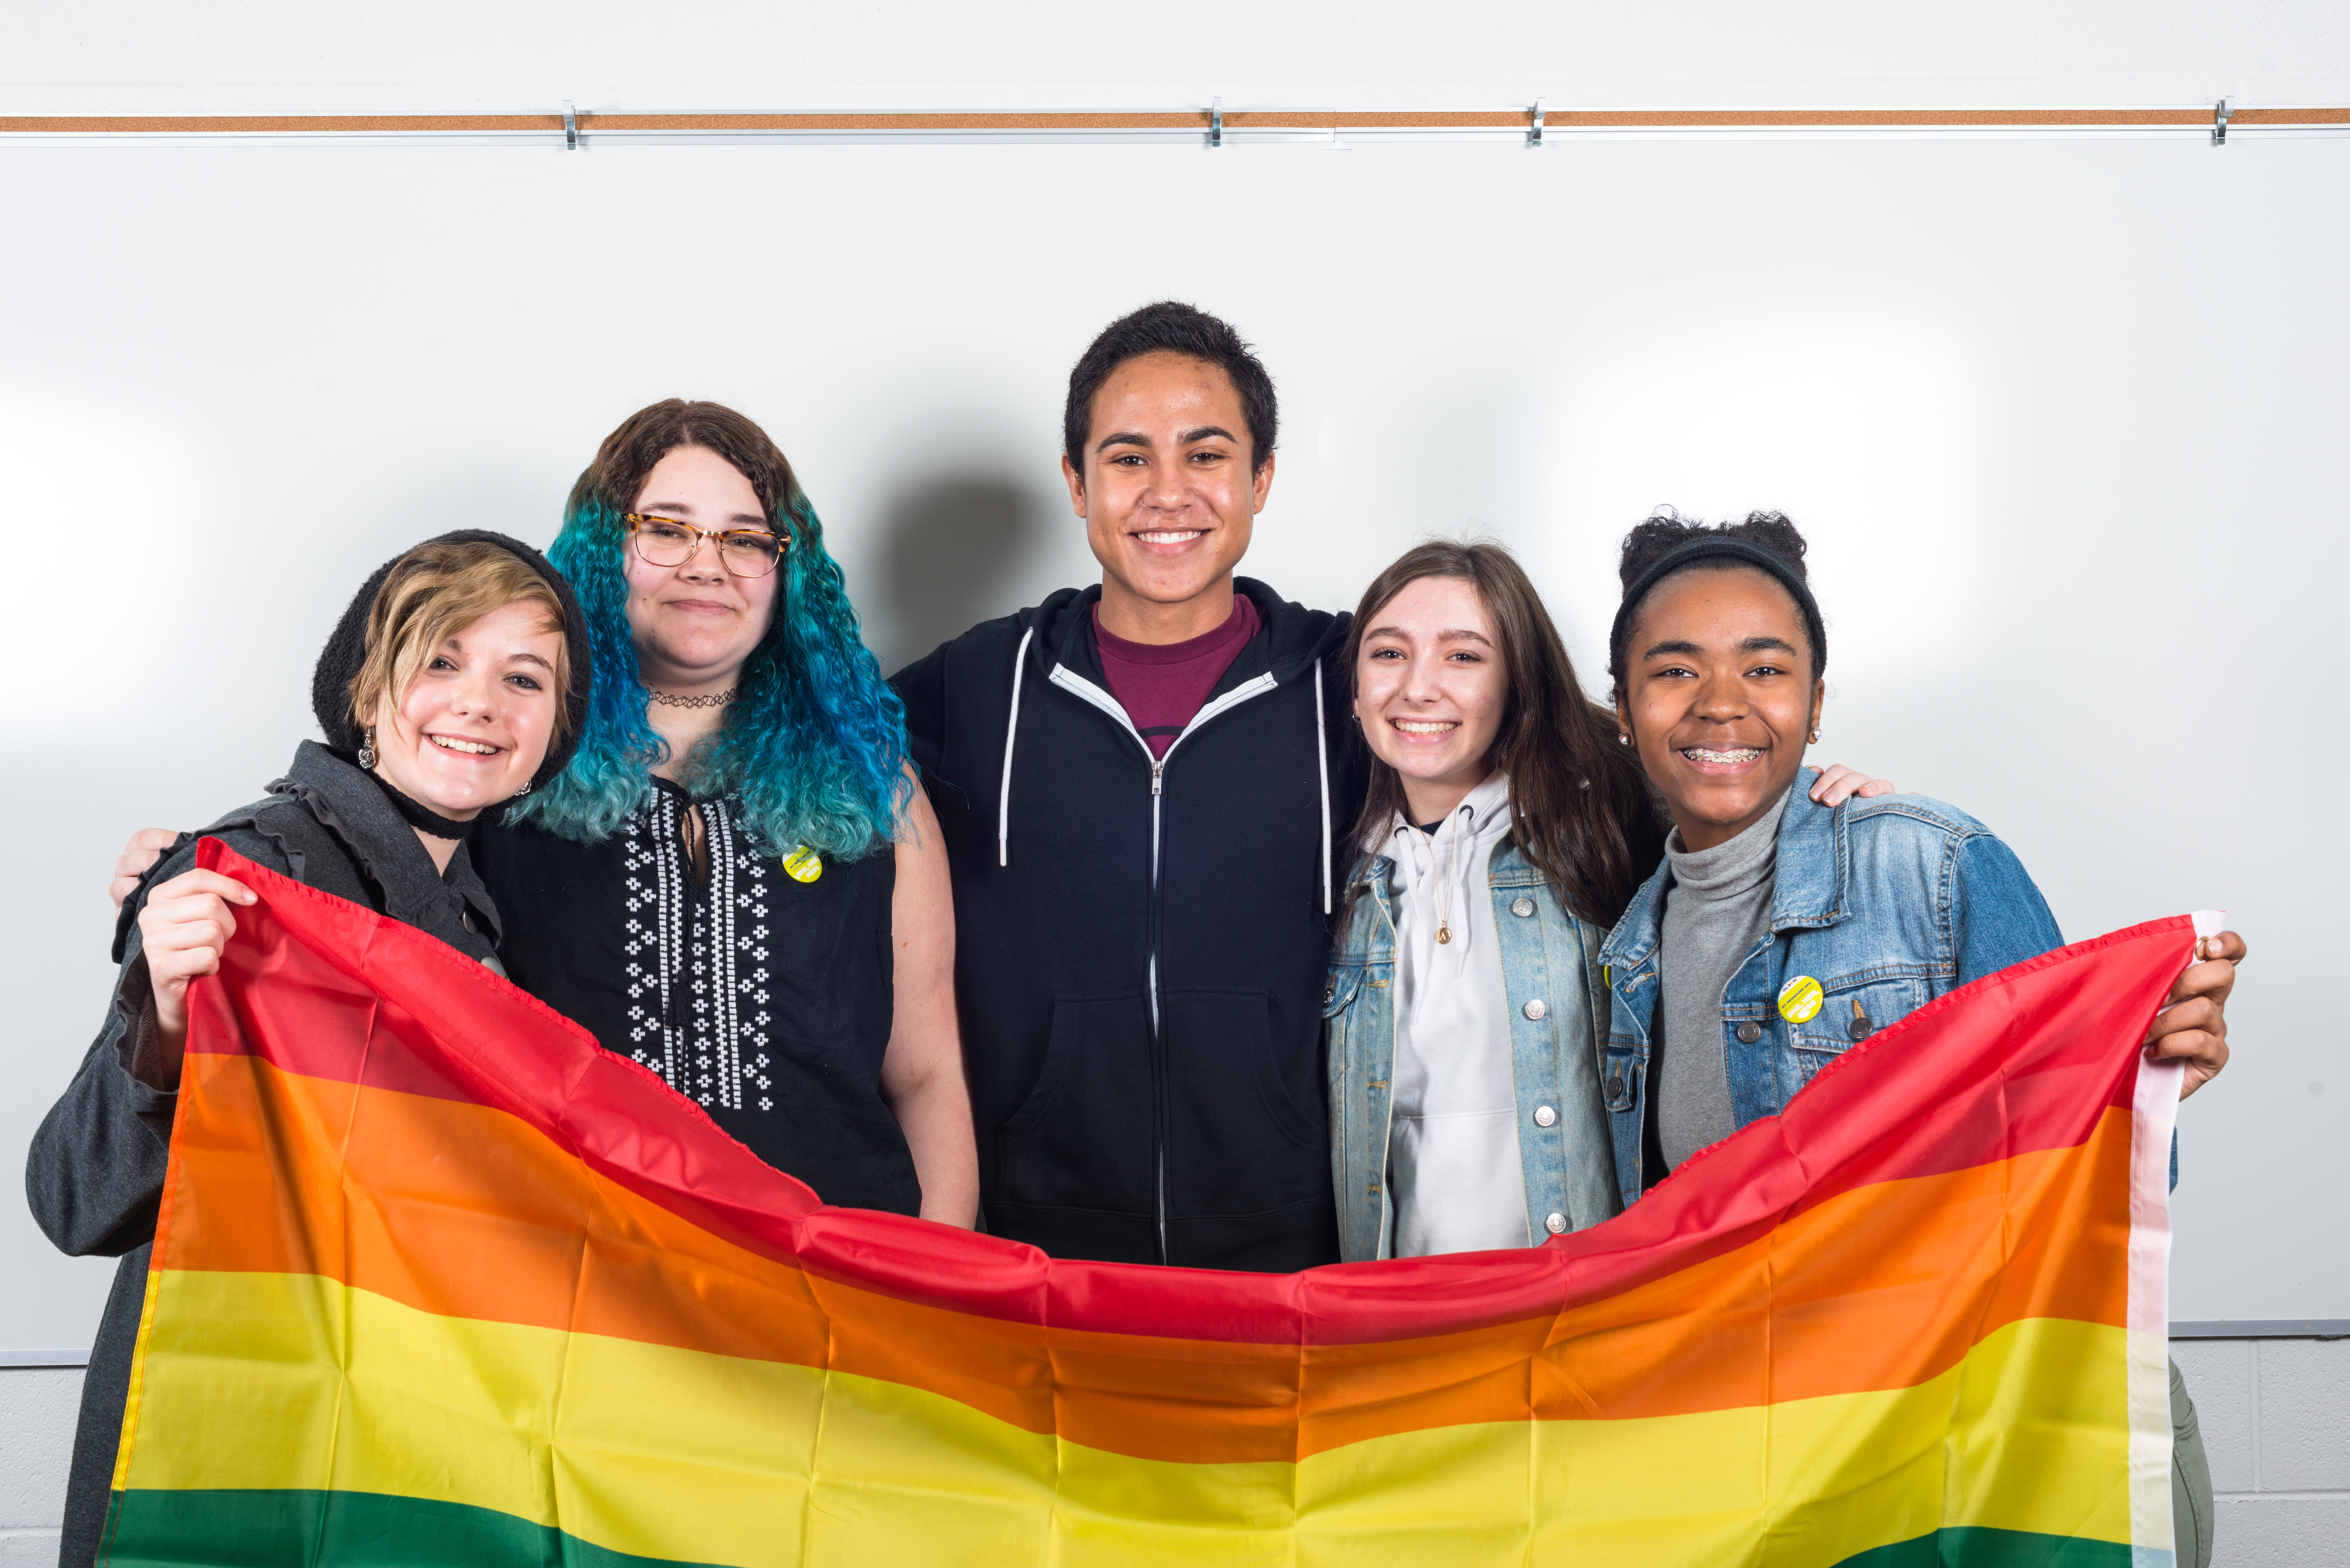 A group of five high school students hold up a rainbow flag and smile at the camera. Two students are wearing GLSEN pronoun pins.